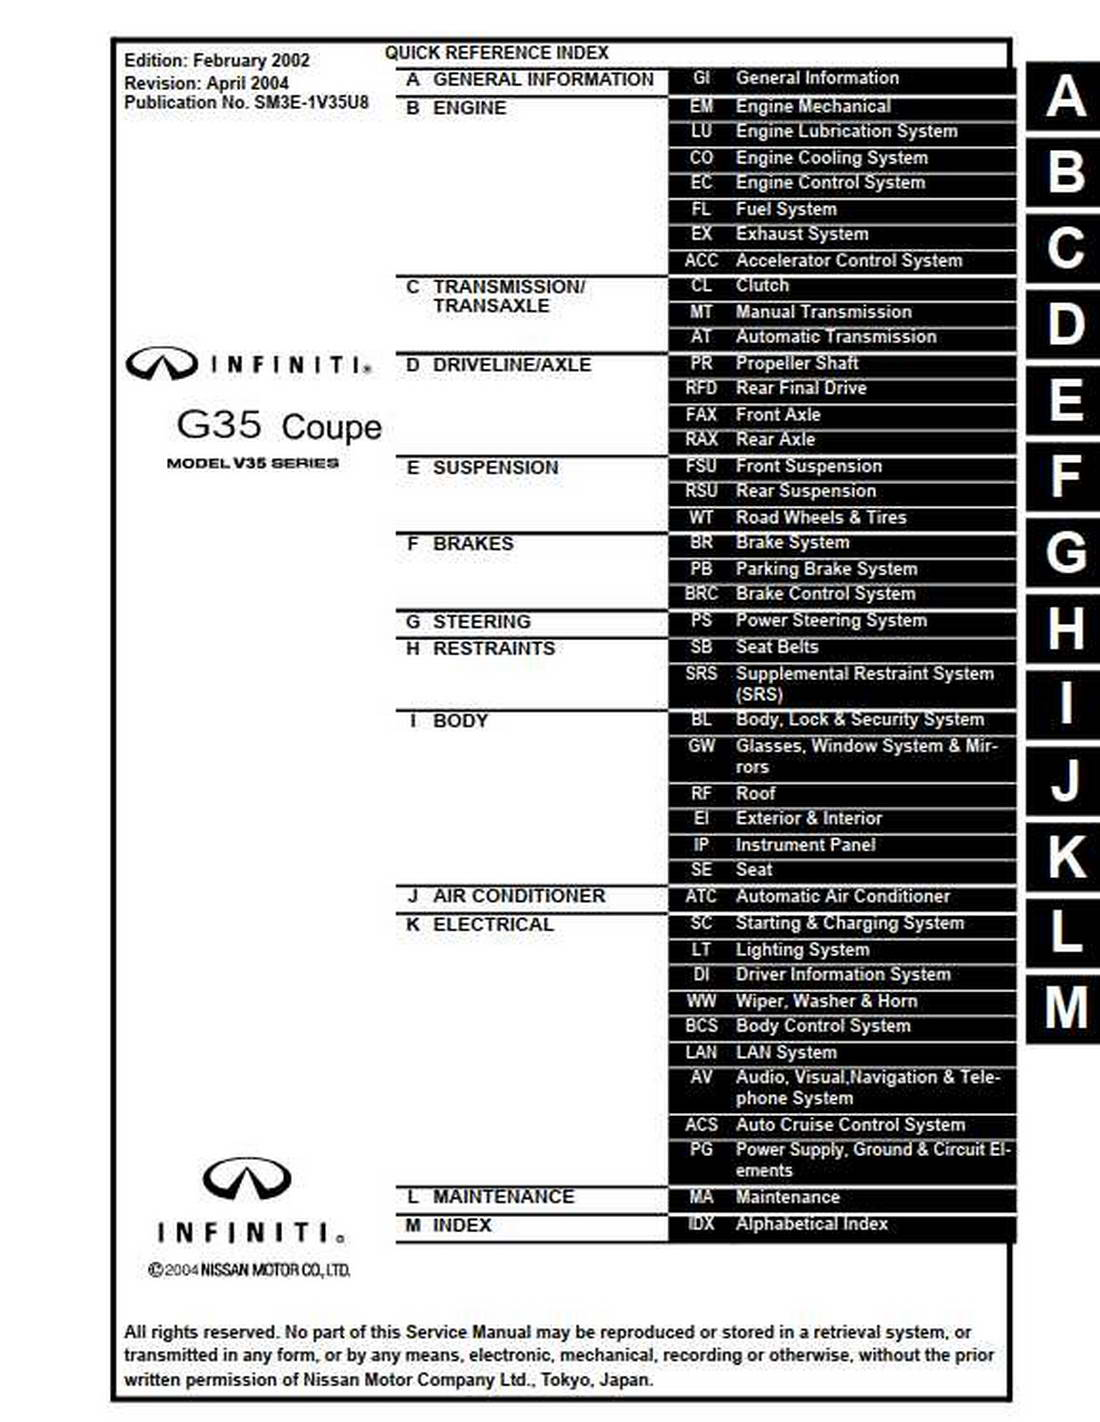 Infiniti G35 Coupe Model V35 Series 2003 Service Manual